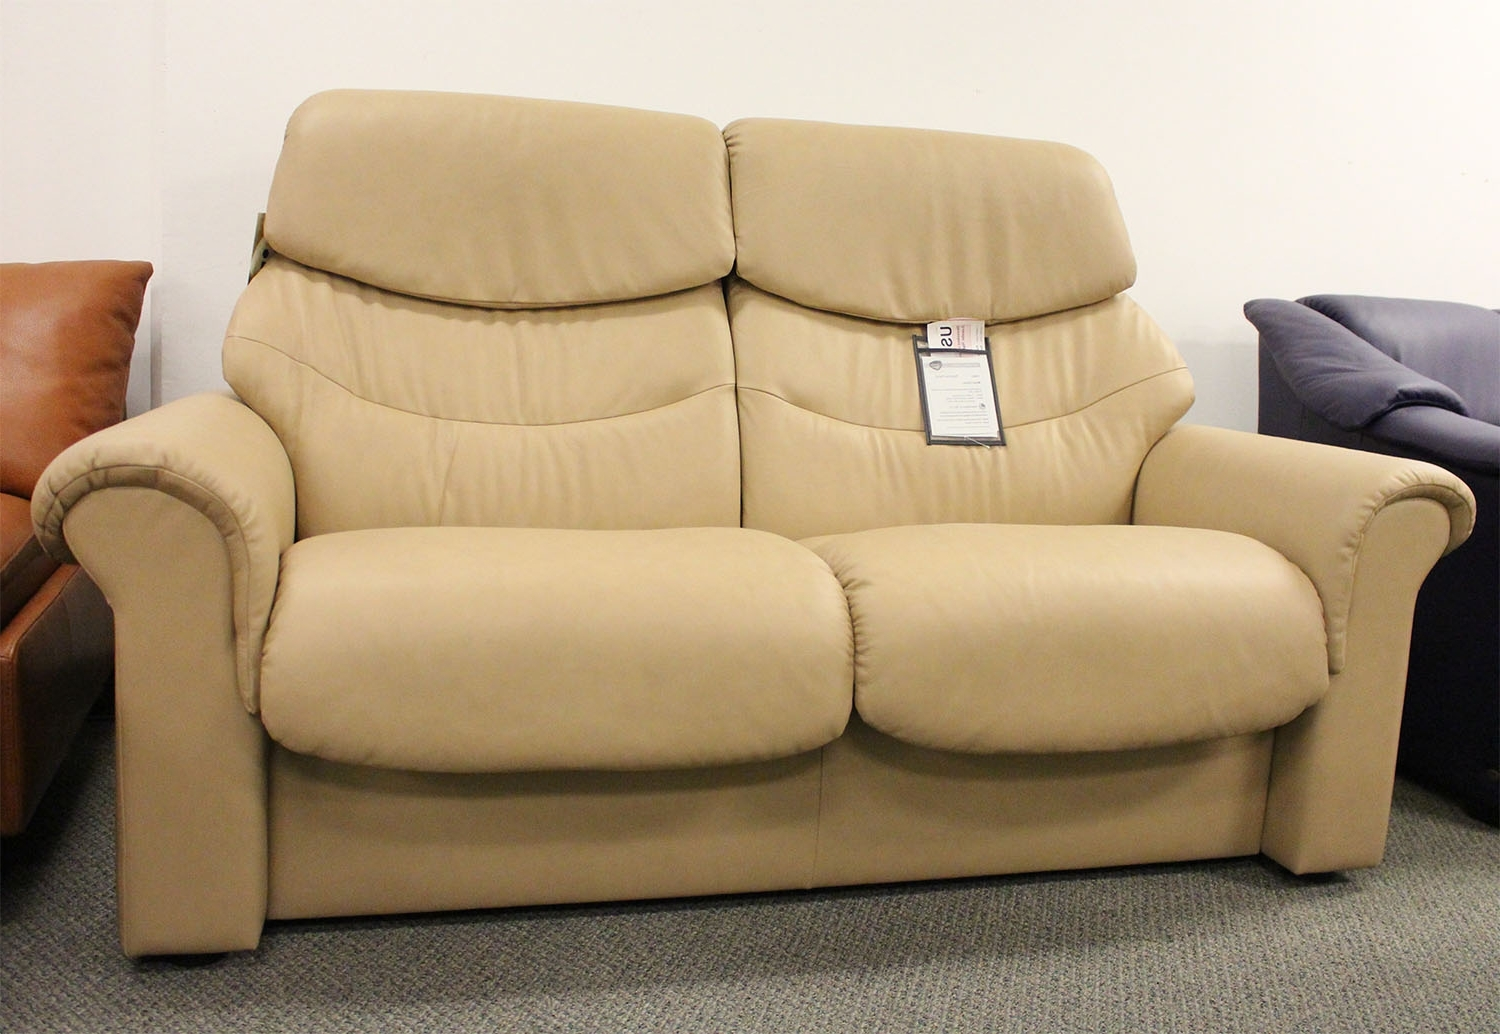 High Back Sectional Sofas – It Is Better To Opt For Leather Or Fabric? Within Well Known High Point Nc Sectional Sofas (View 8 of 15)